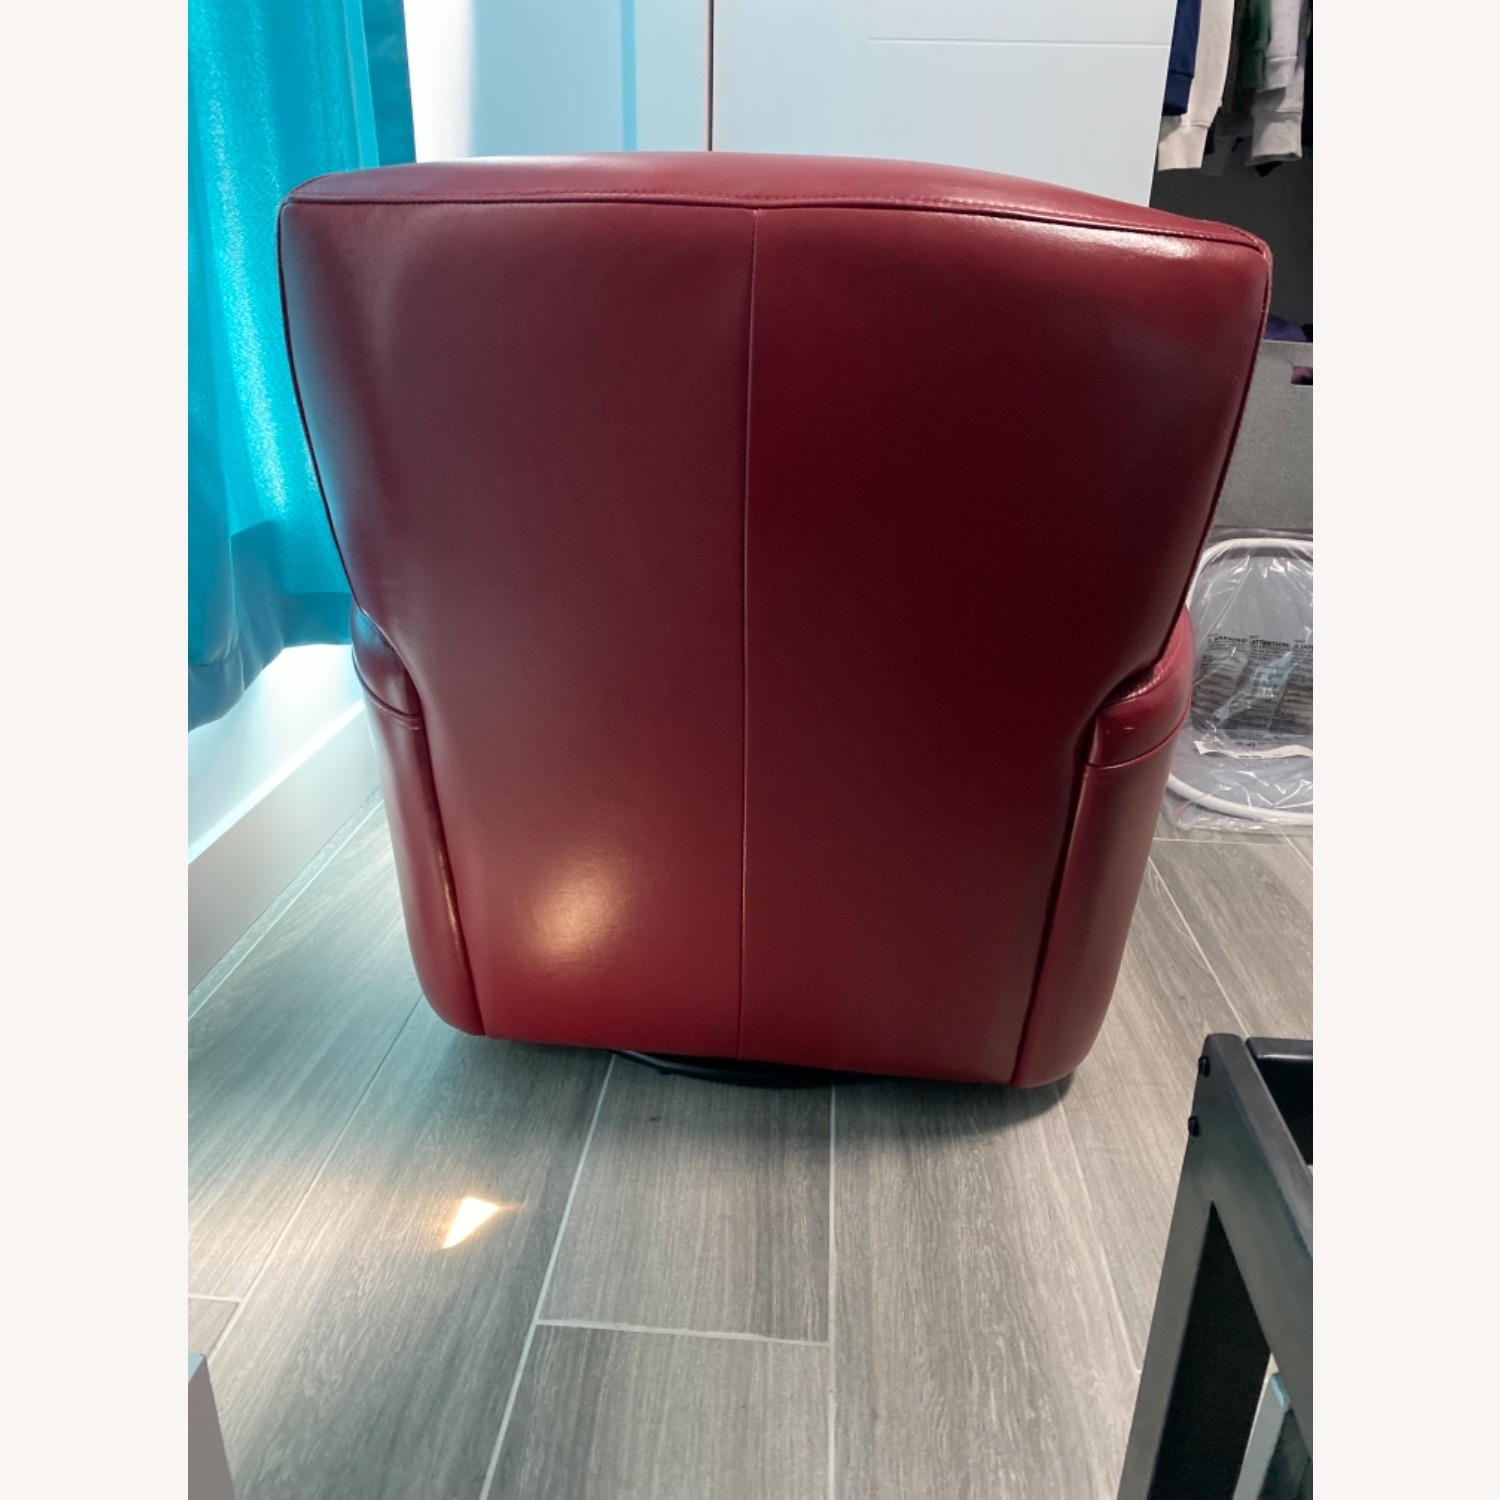 Bob's Discount Furniture Red Leather Accent Chair - image-3